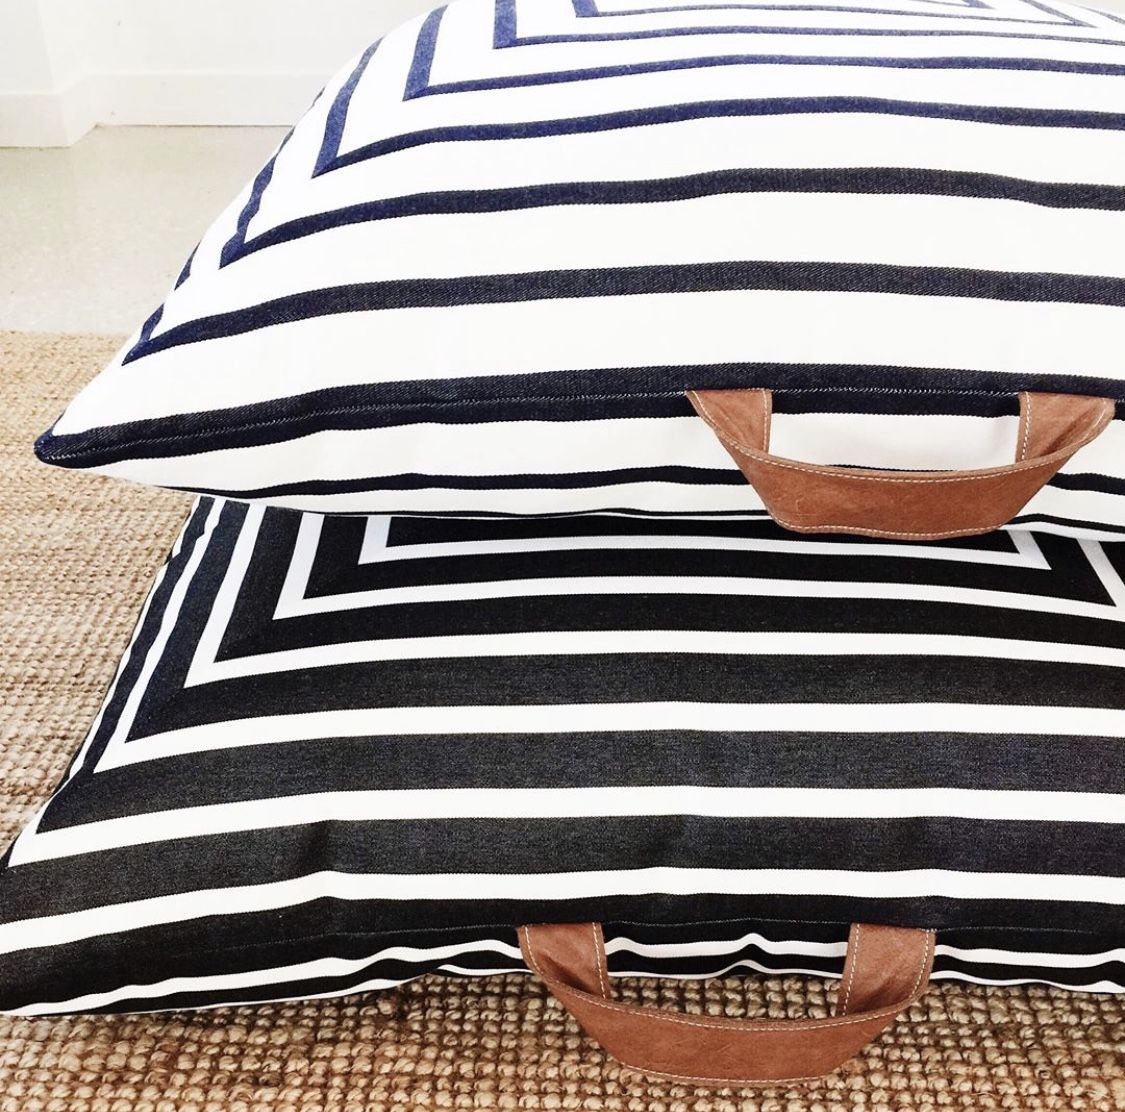 Our Ever Popular Outdoor Floor Cushions Are Back In Stock After The Christmas Blitz And We Have Ad In 2020 Floor Cushions Outdoor Floor Cushions Large Floor Cushions